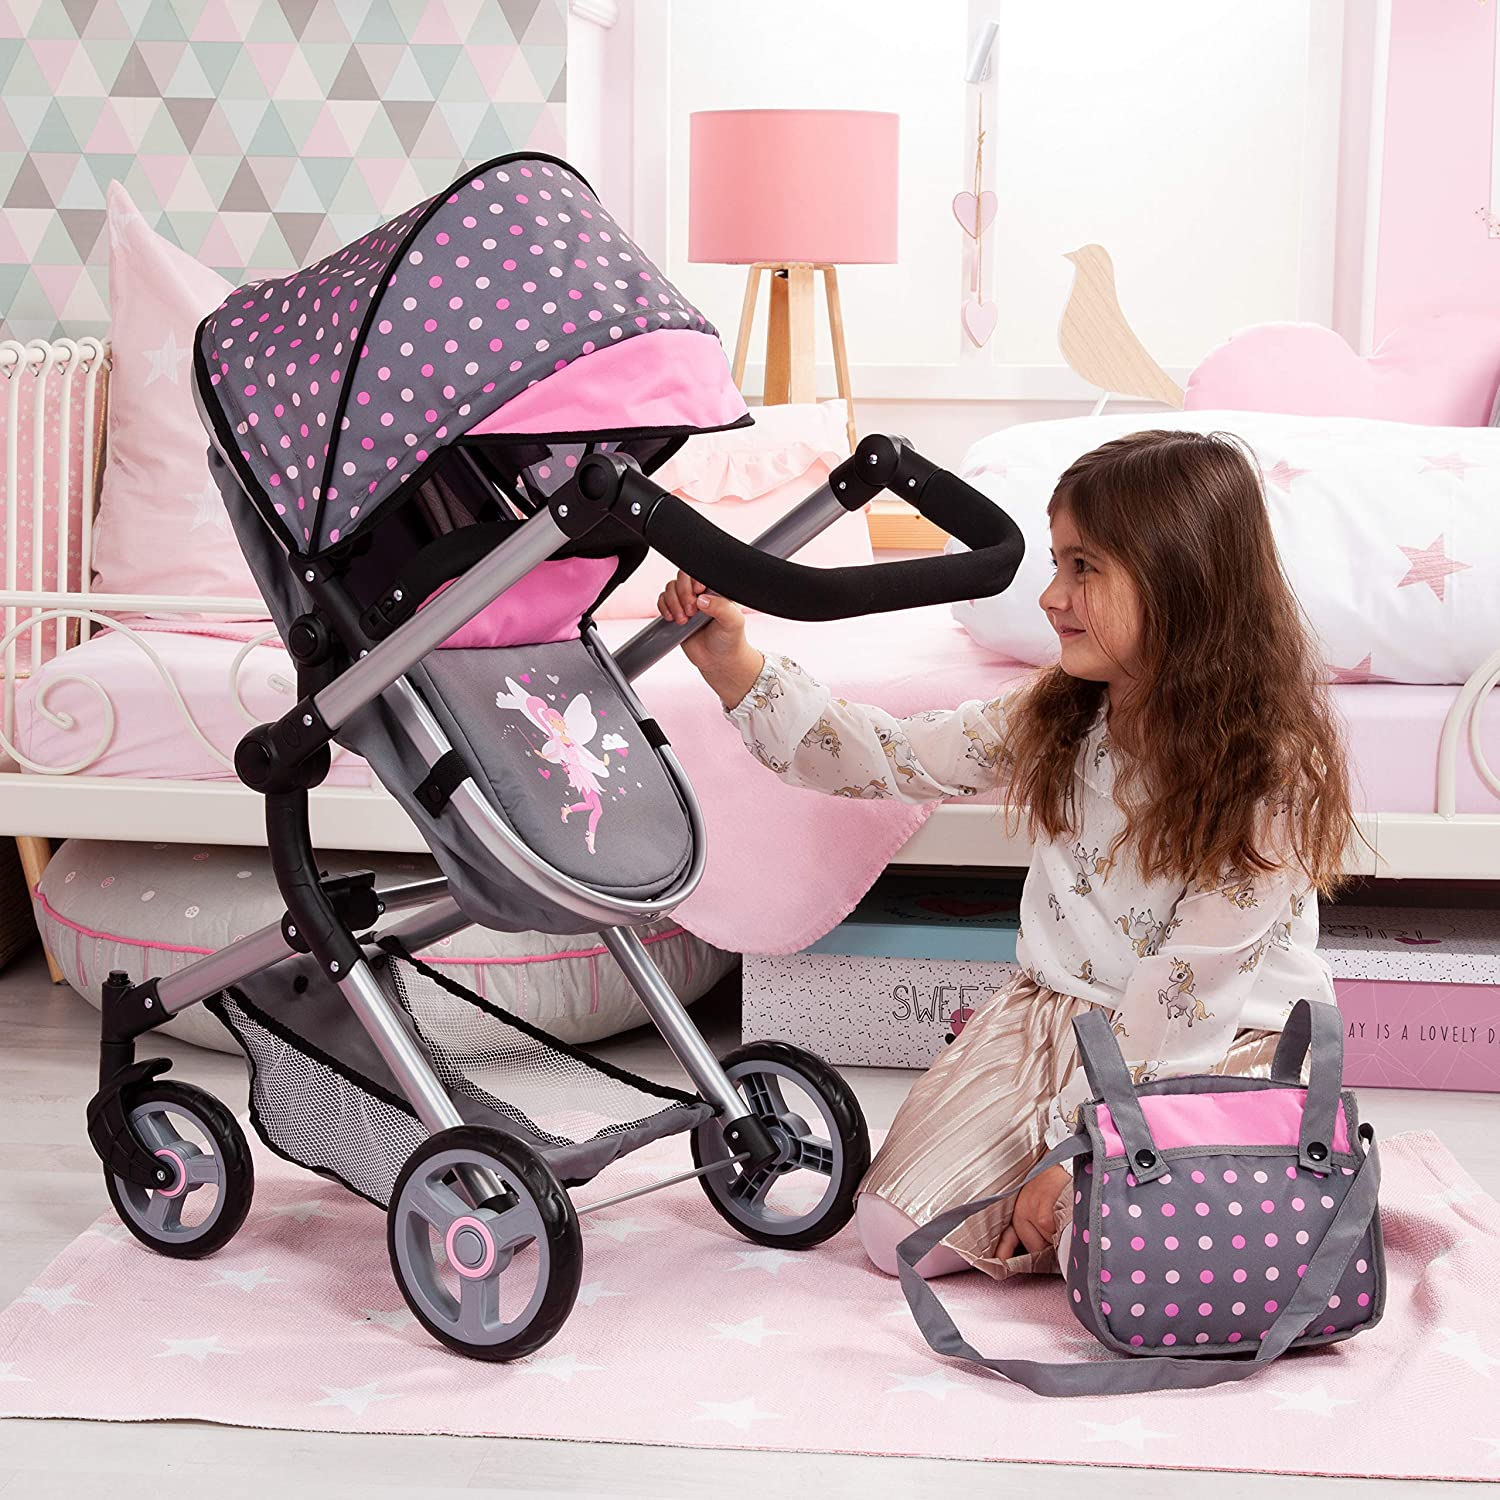 Amazon.com: Bayer Design 18466AA Stroller, Doll Combi Pram Neo Vario with Changing Bag and Underneath Shopping Basket, Foldable, Swivel Front Wheels, ...